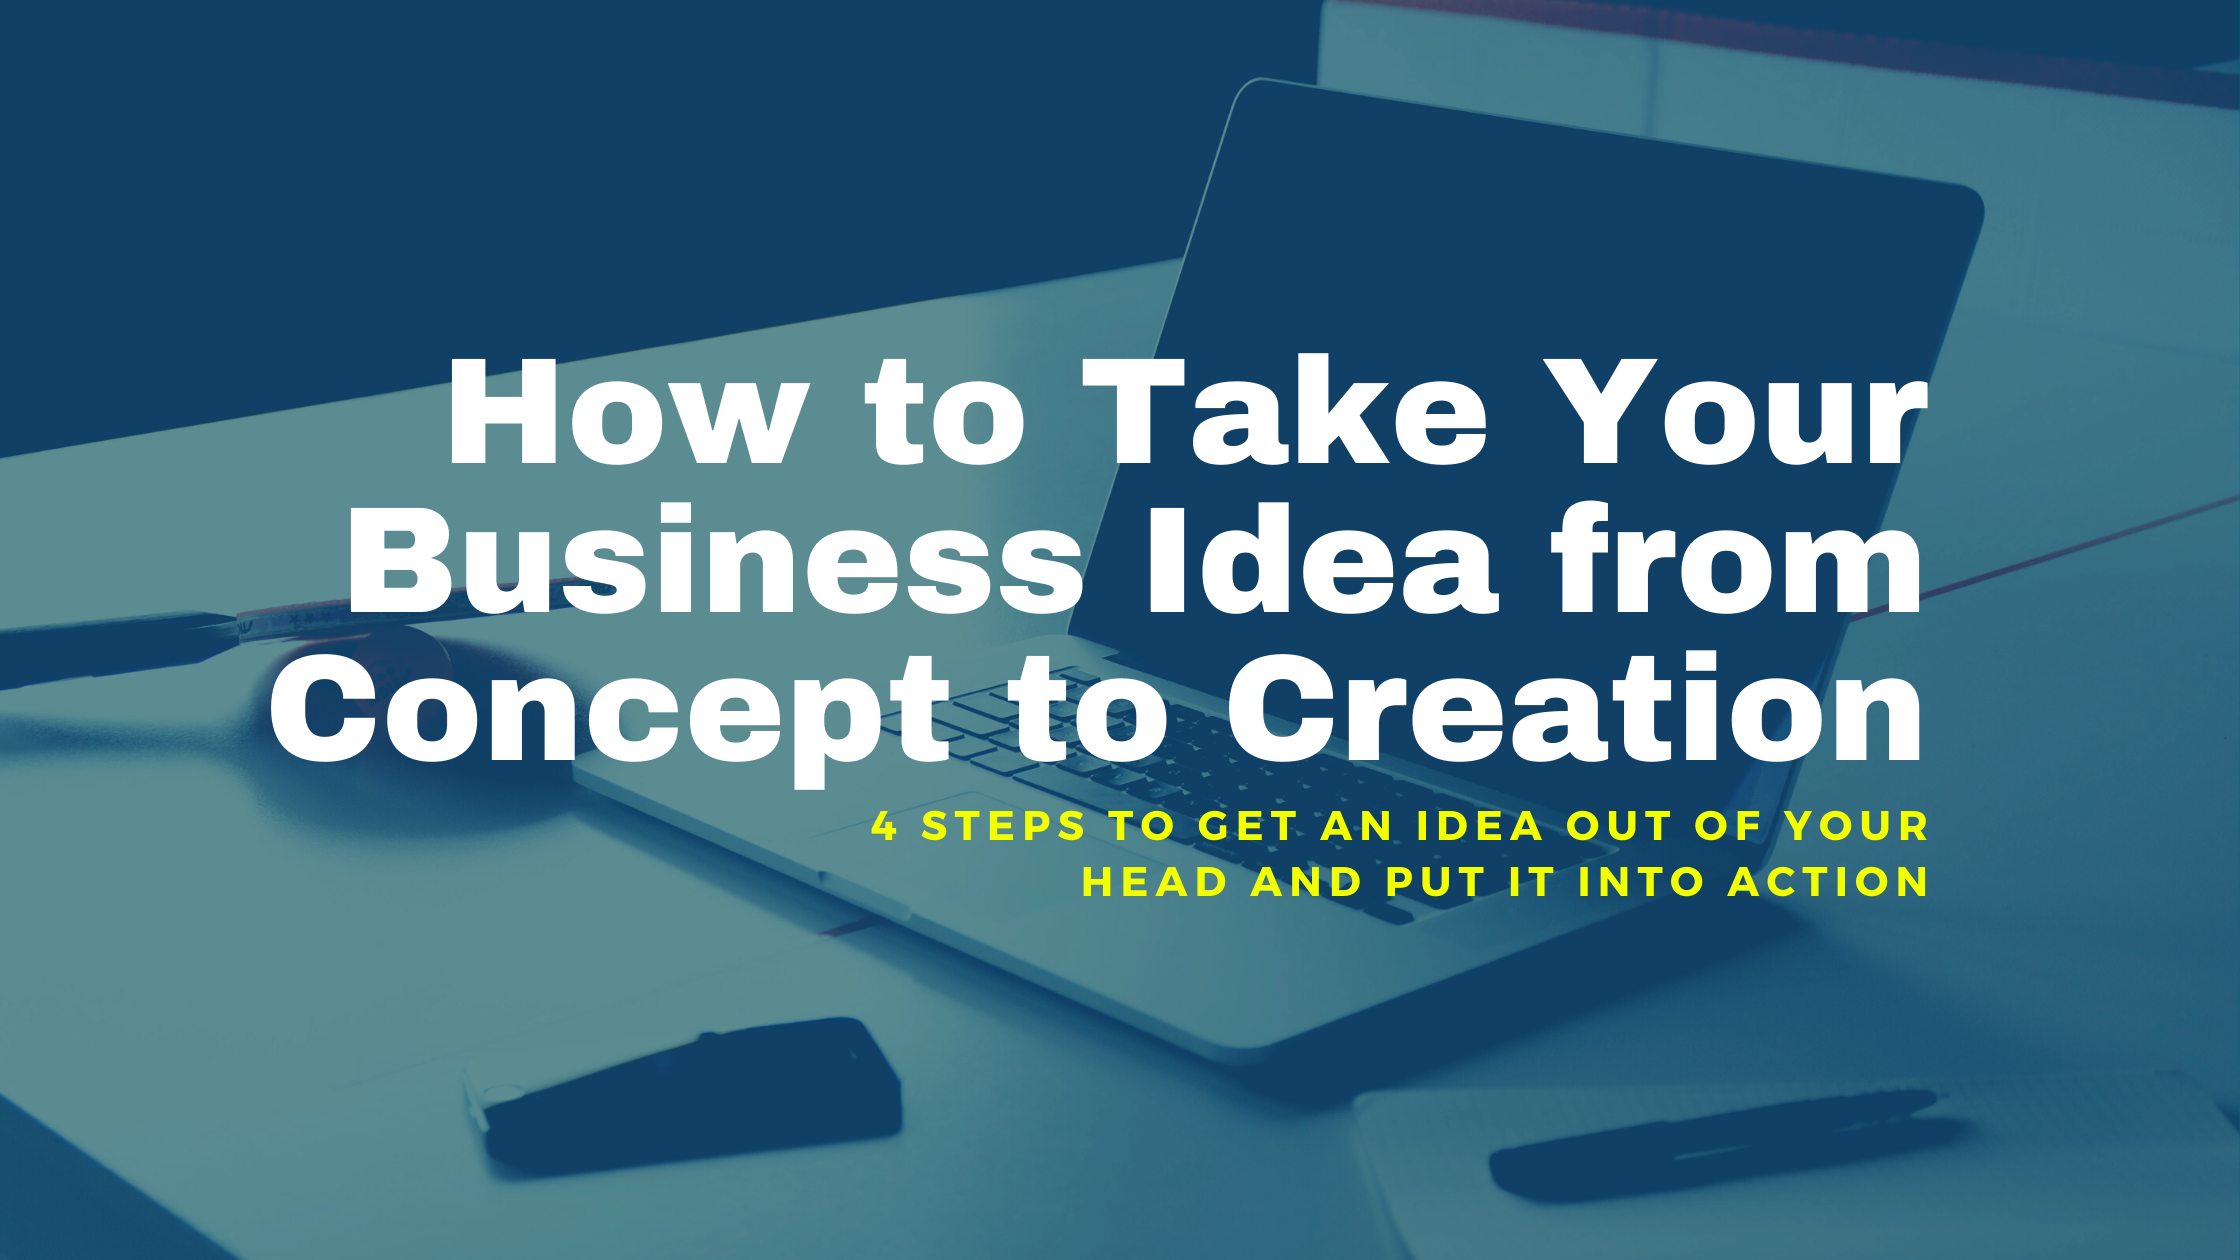 Entrepreneurship: How to Take Business Ideas from Concept to Creation